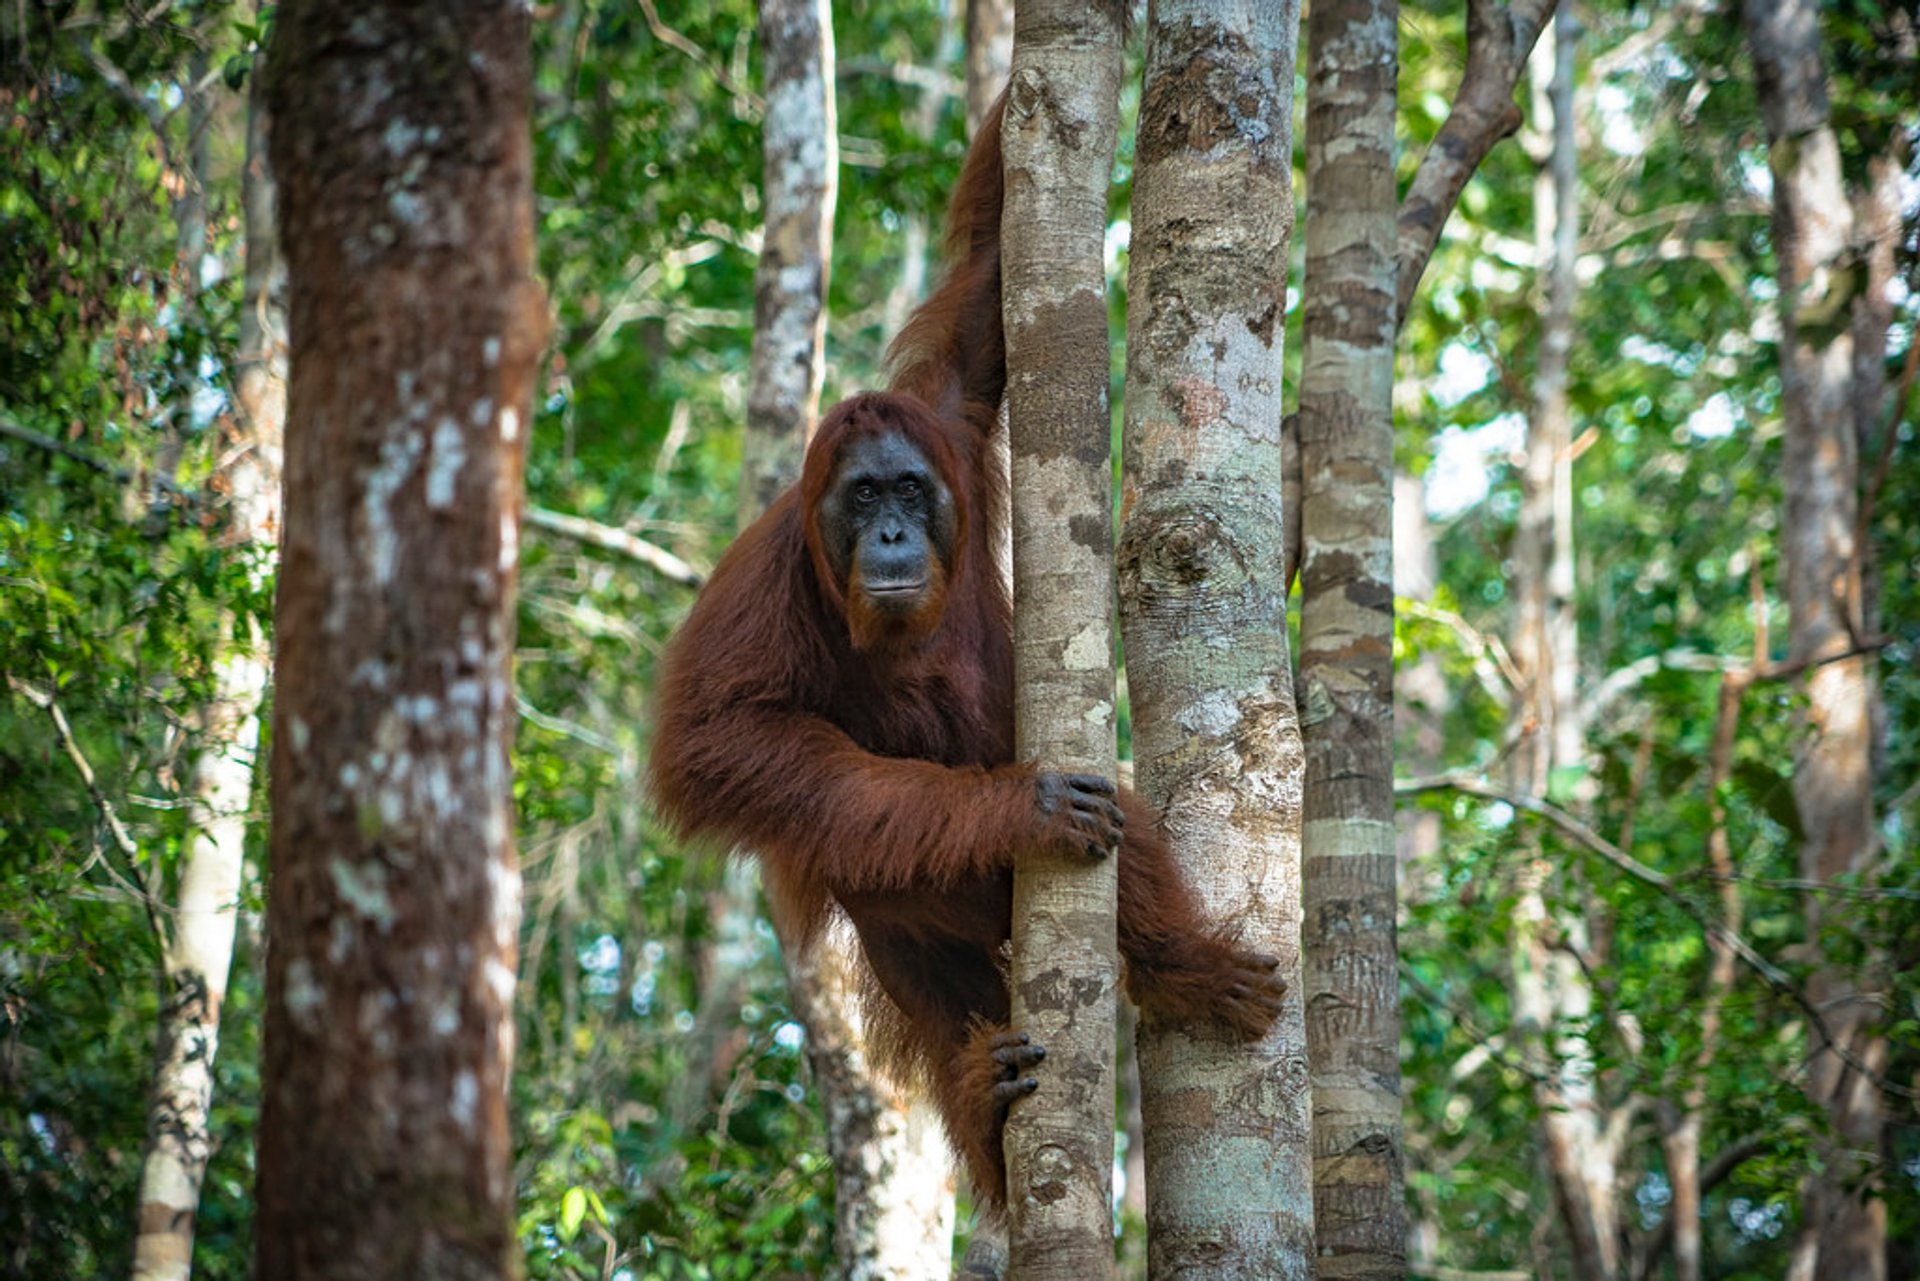 Hiking in the Wild Forests of Kalimantan in Borneo - Best Season 2020